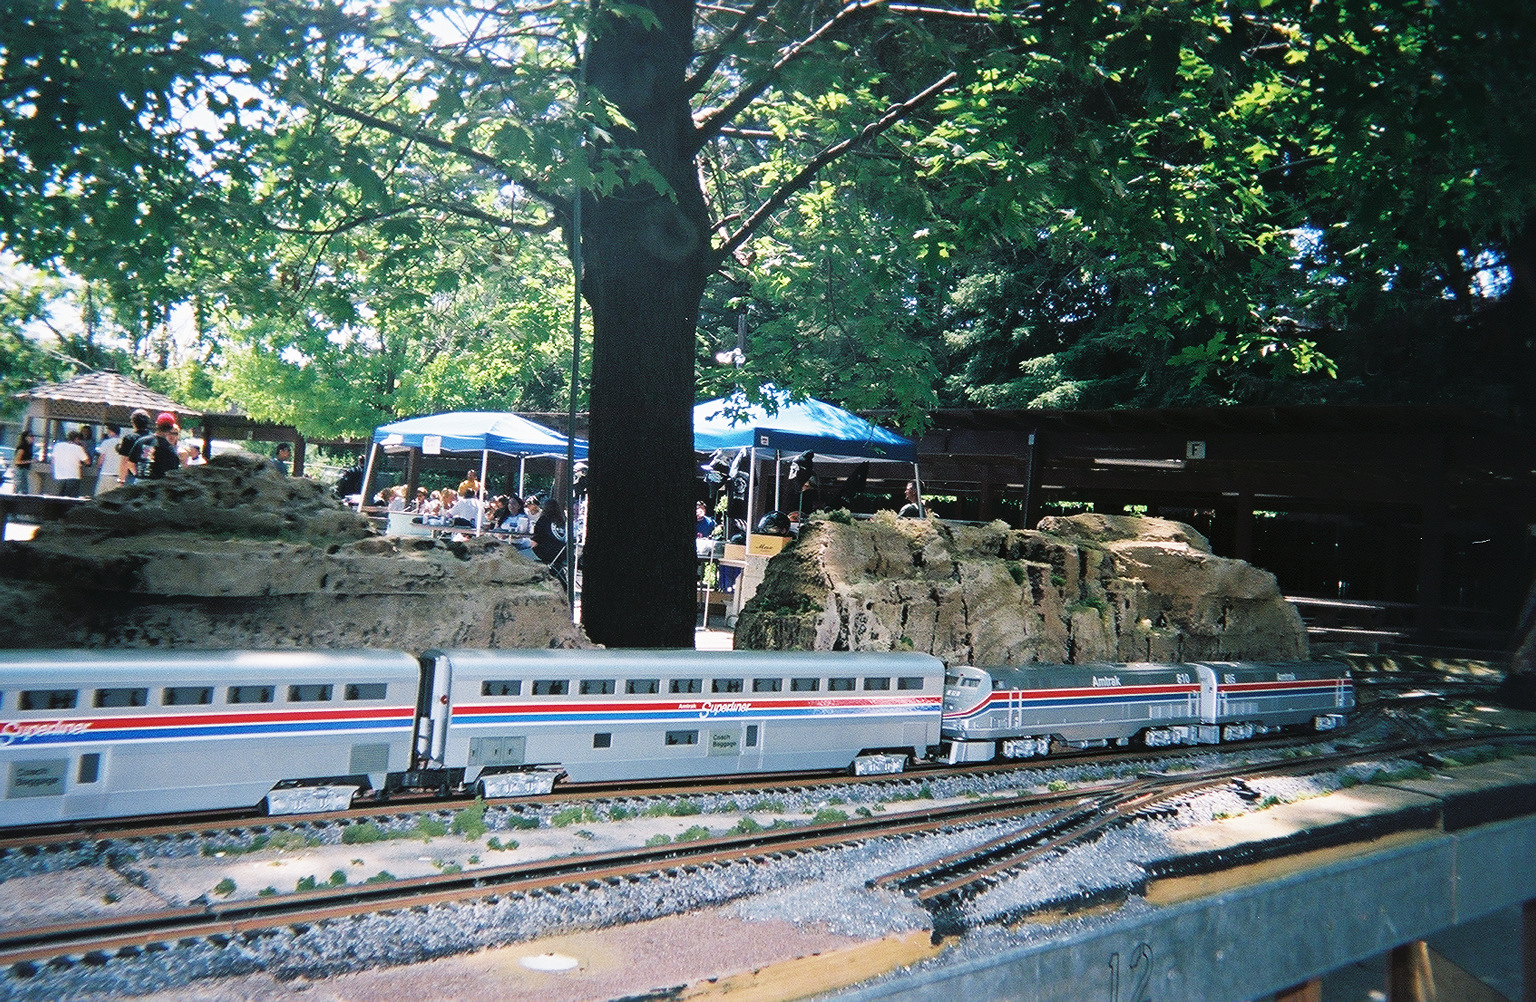 #  Amtrak Outdoors at the Elks